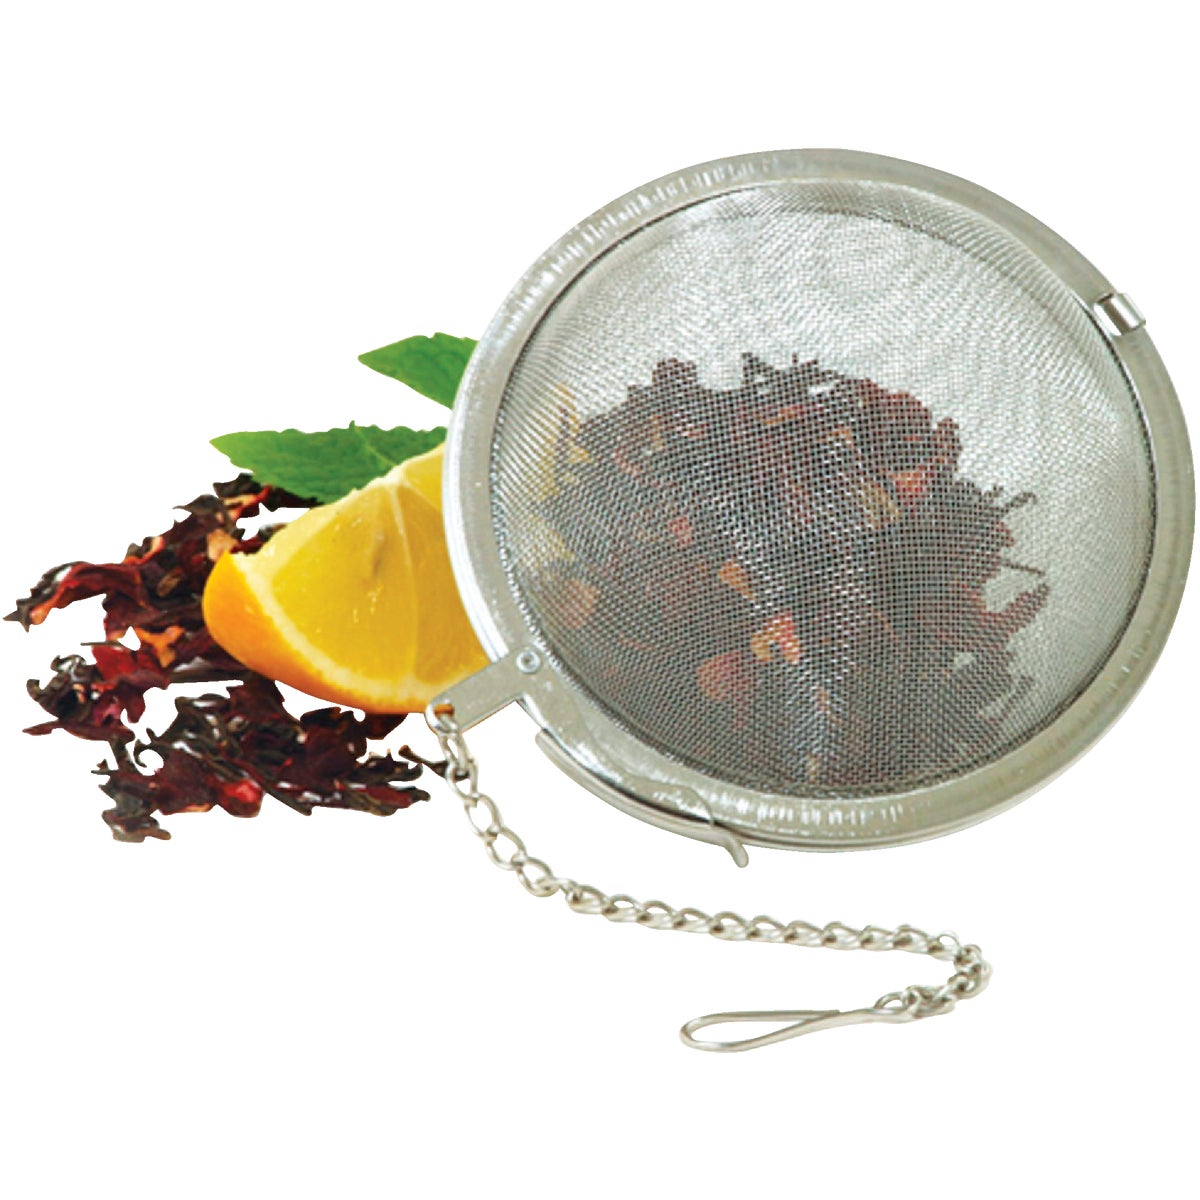 "2-1/2"" SS MESH TEA BALL - 5504 by Norpro"